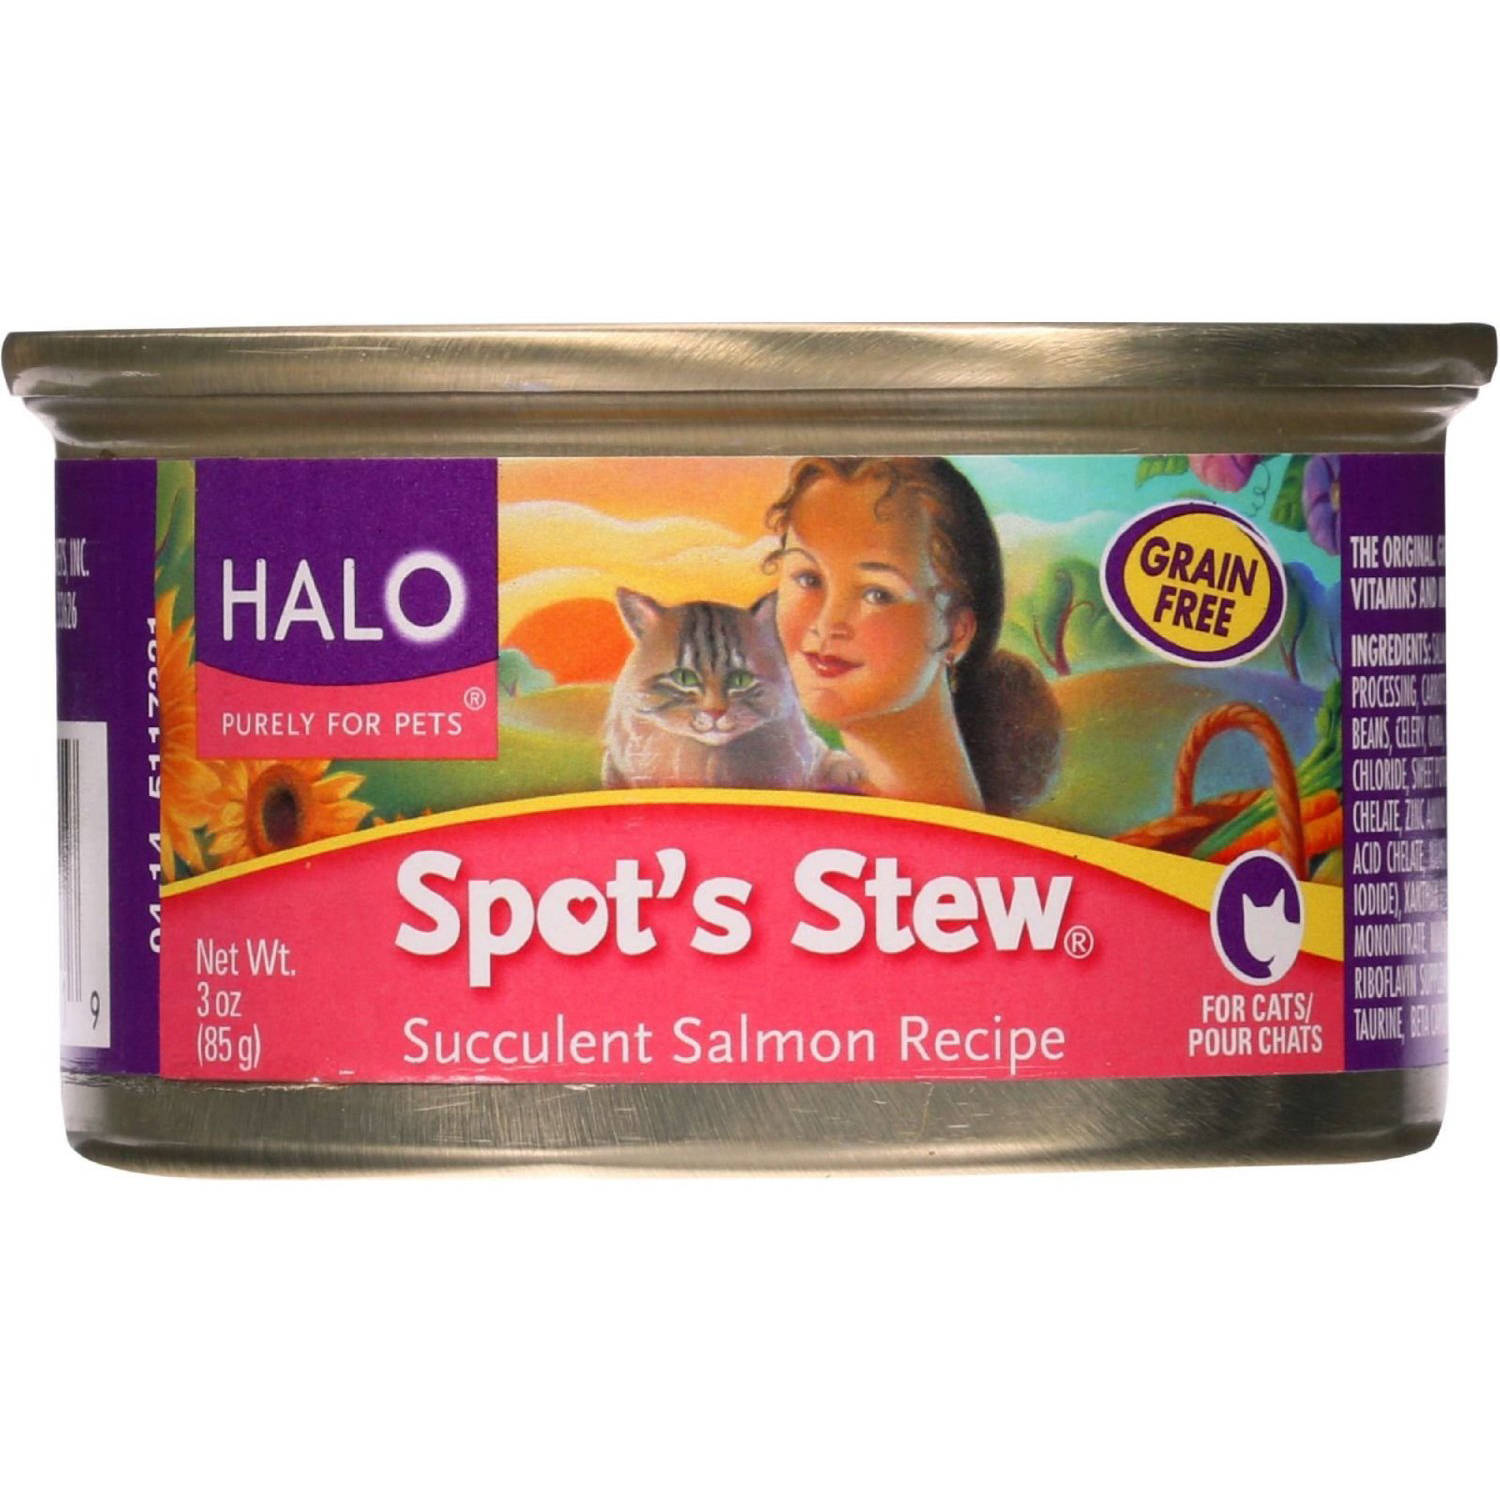 Halo Spot's Stew Succulent Salmon Recipe Canned Cat Food, 3 oz, 12 - Pack